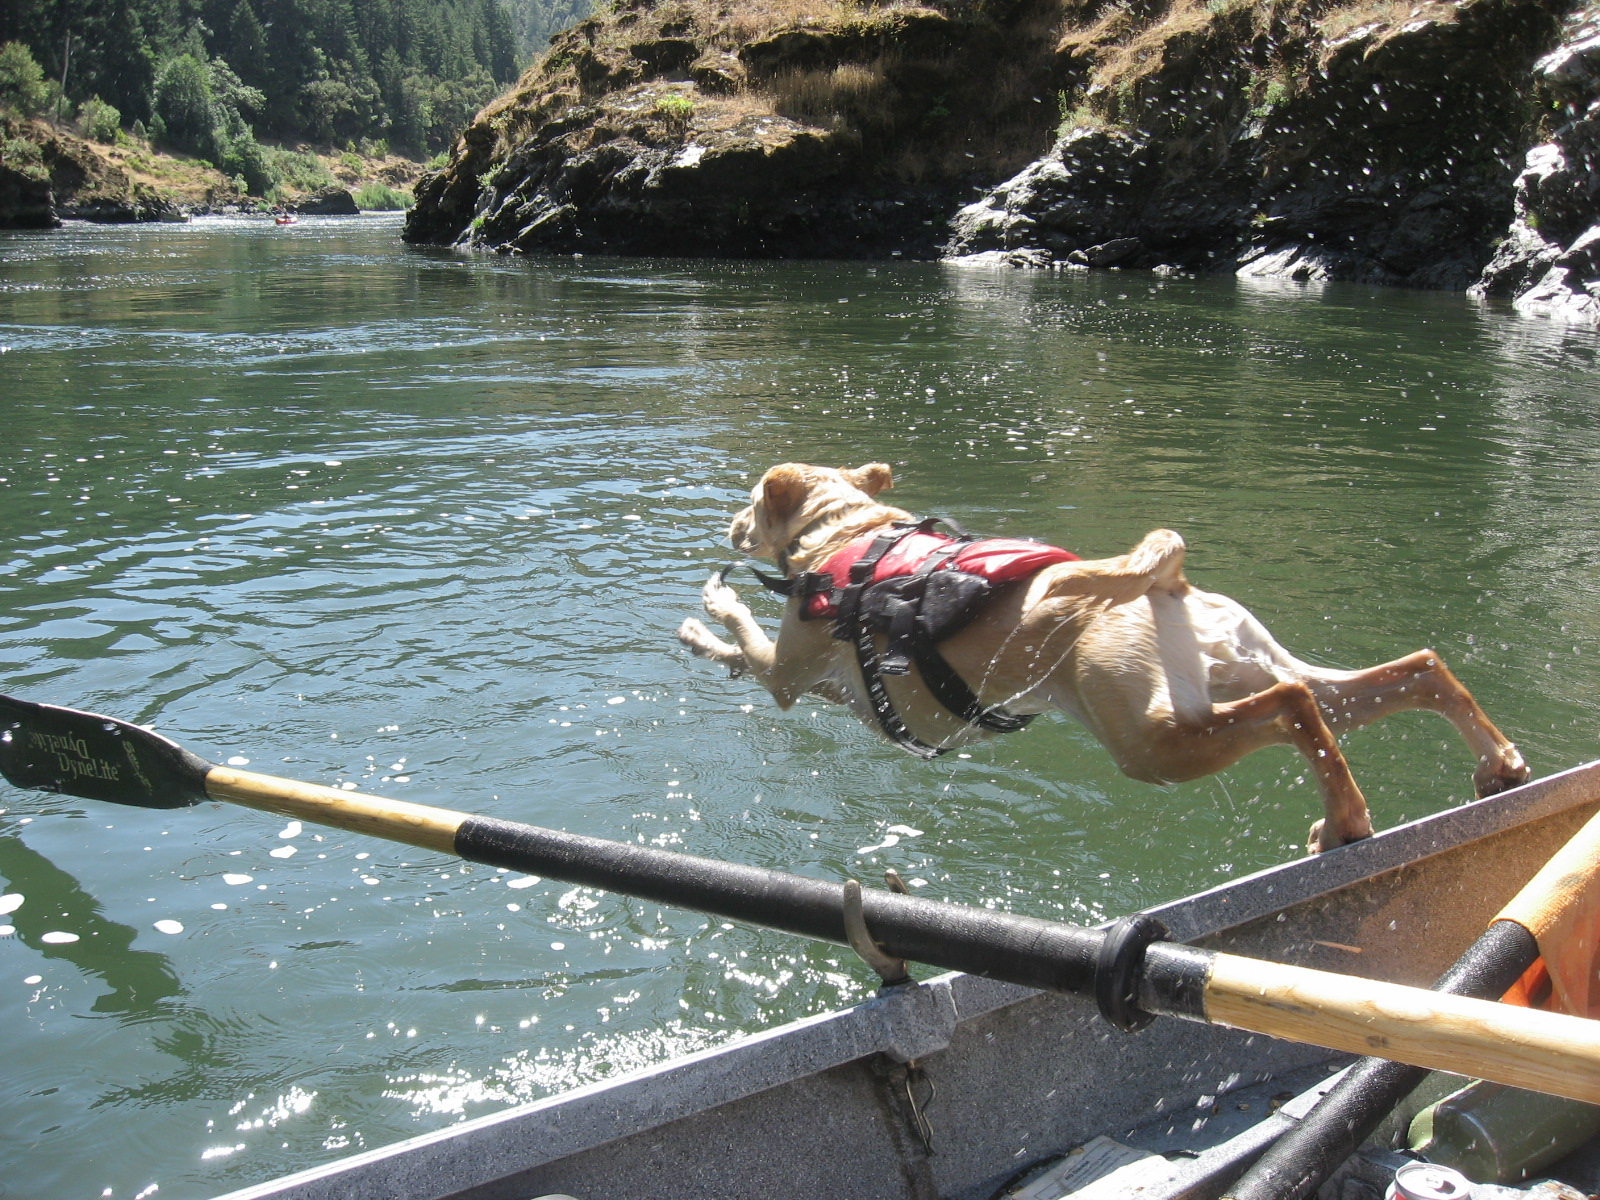 Click image for larger version  Name:Rogue River 629.jpg Views:125 Size:858.9 KB ID:2504